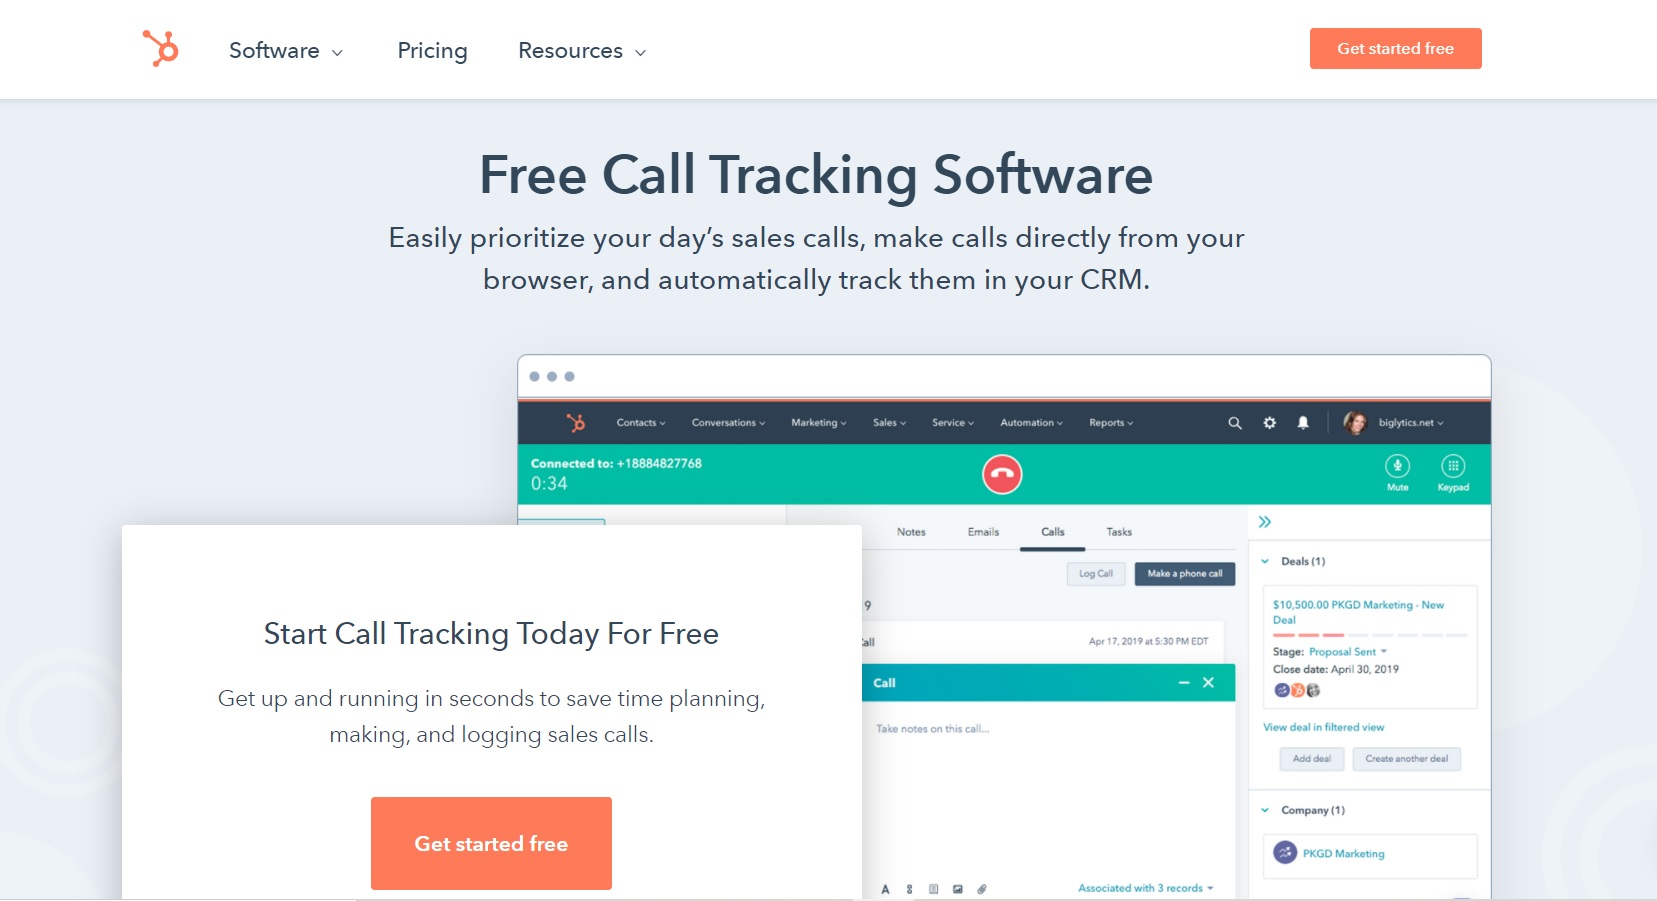 Landing page screenshot of Hubspot Sales Hub, one of the multichannel outreach tools mentioned in the article.